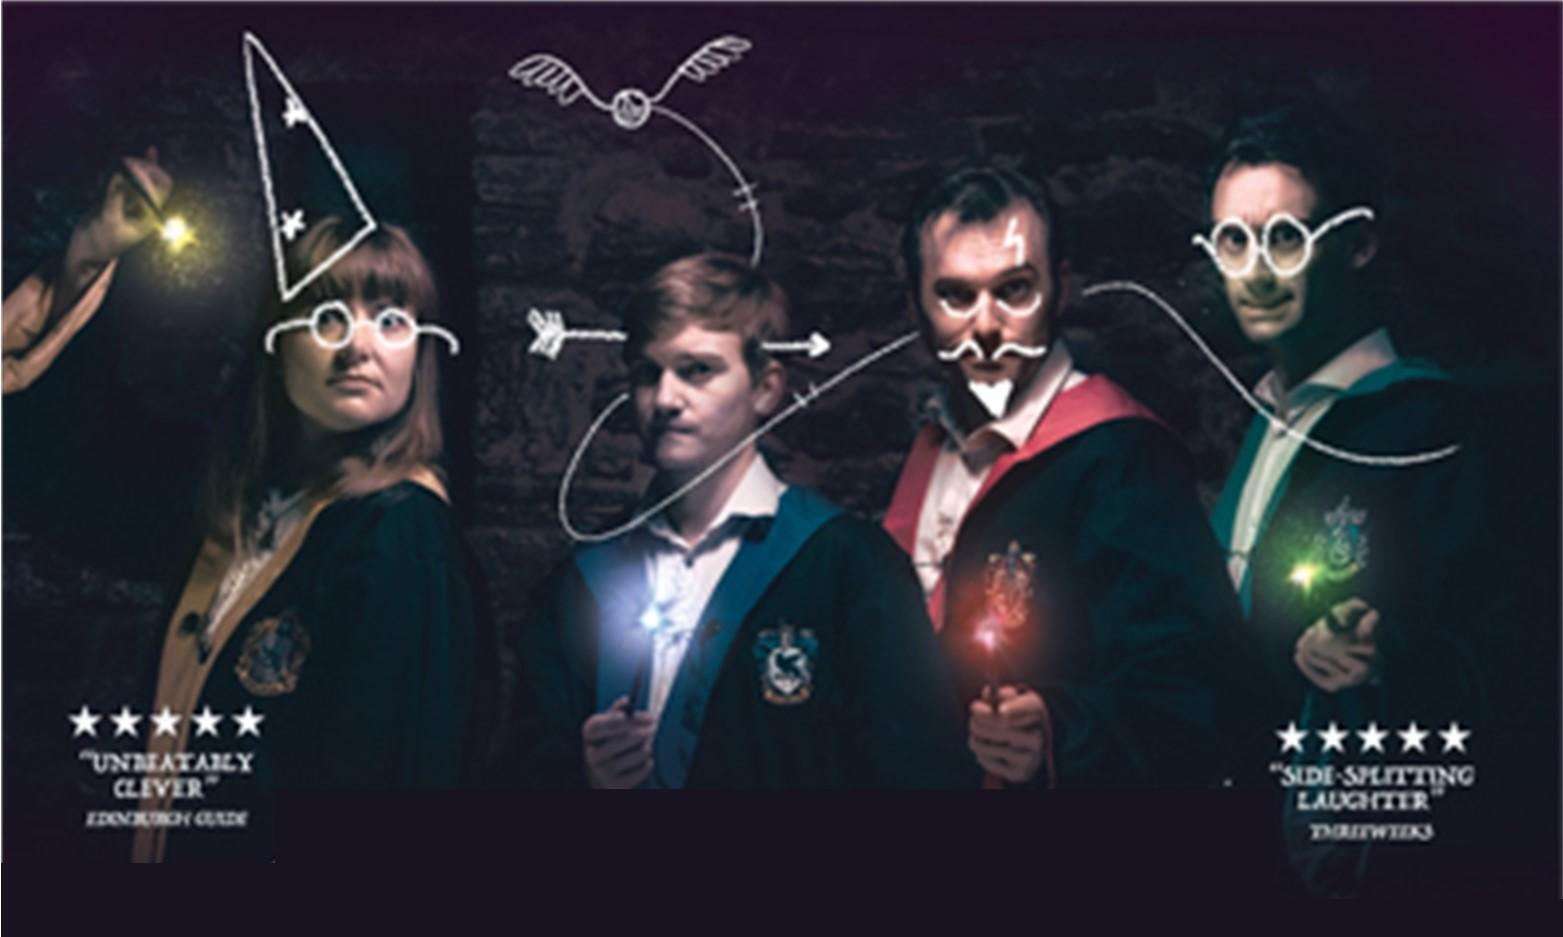 Spontaneous Potter for Kids at Ffwrnes Theatre